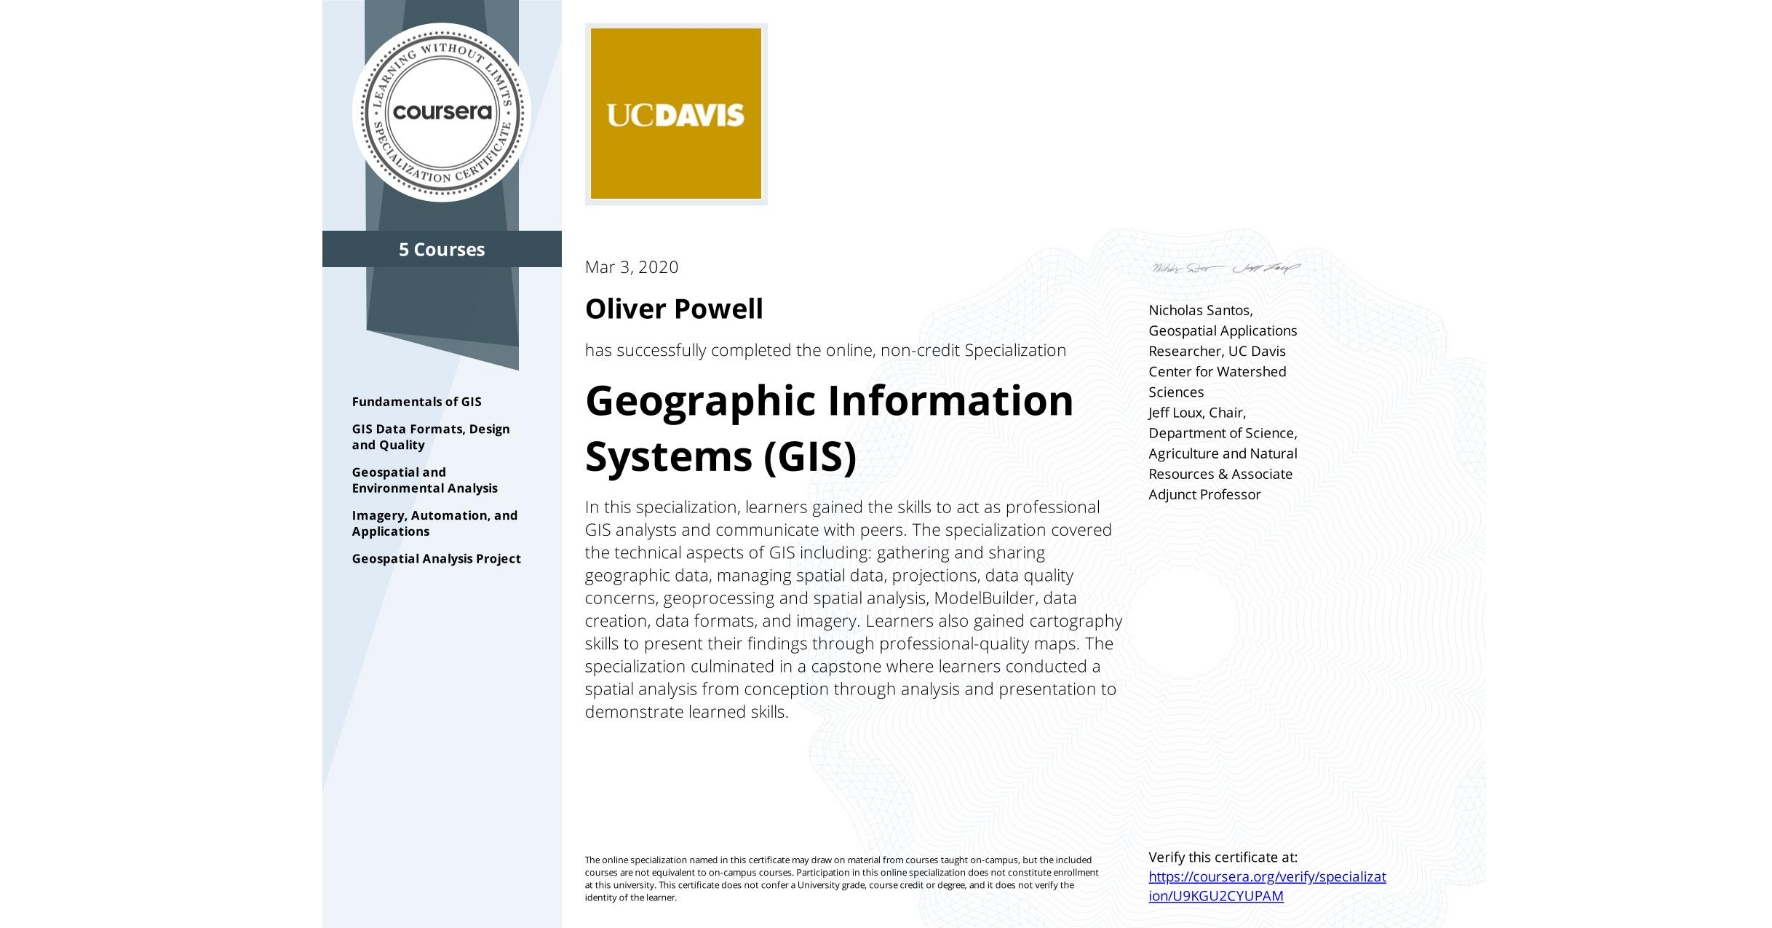 View certificate for Oliver Powell, Geographic Information Systems  (GIS), offered through Coursera. In this specialization, learners gained the skills to act as professional GIS analysts and communicate with peers. The specialization covered the technical aspects of GIS including: gathering and sharing geographic data, managing spatial data, projections, data quality concerns, geoprocessing and spatial analysis, ModelBuilder, data creation, data formats, and imagery. Learners also gained cartography skills to present their findings through professional-quality maps. The specialization culminated in a capstone where learners conducted a spatial analysis from conception through analysis and presentation to demonstrate learned skills.